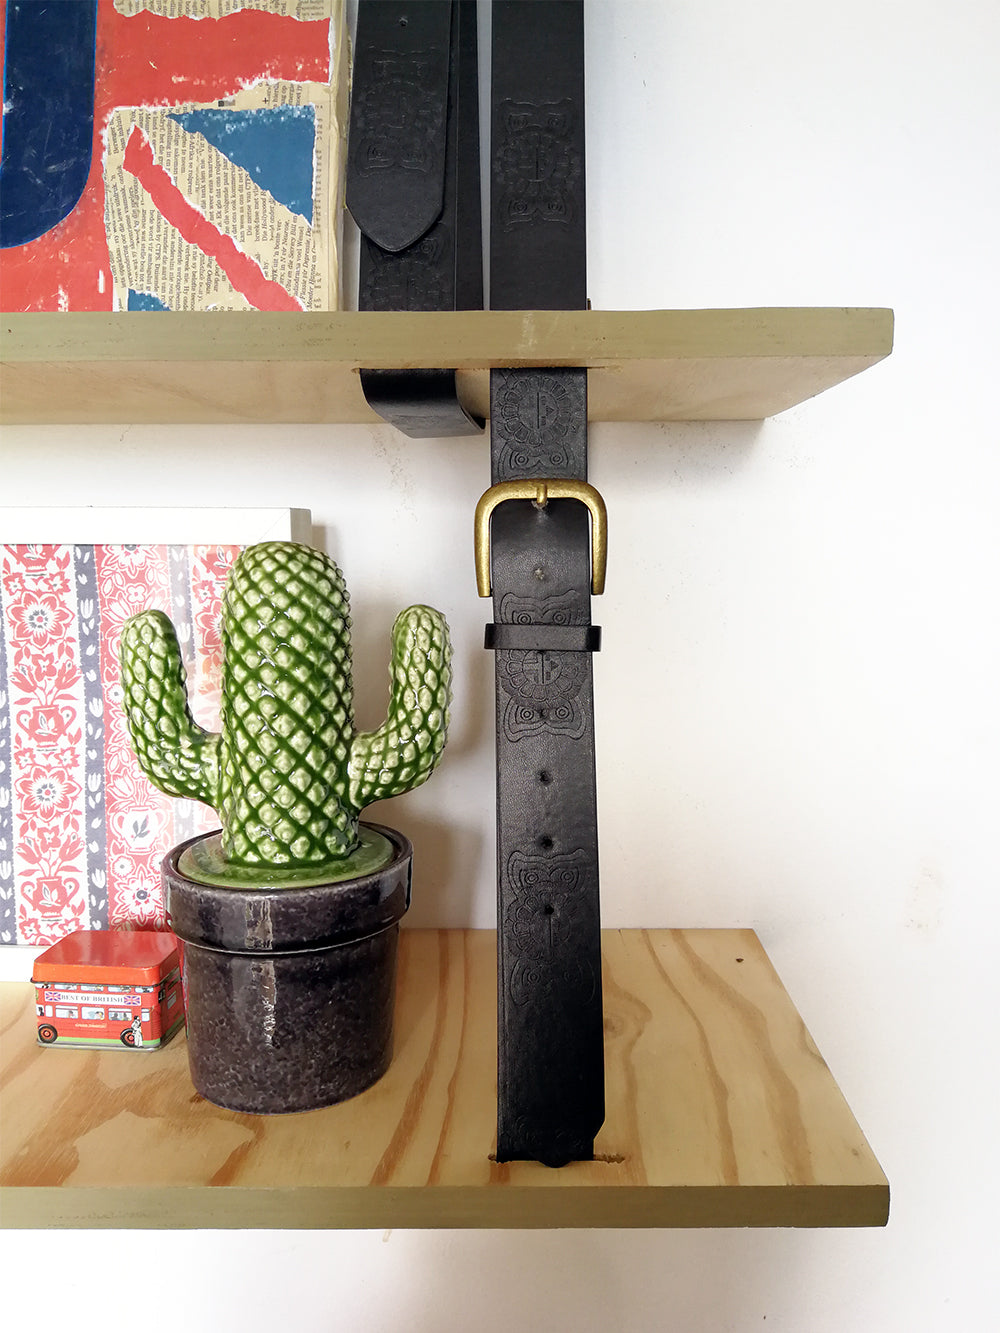 close up of hanging shelf in home office with glass cactus and belt detail